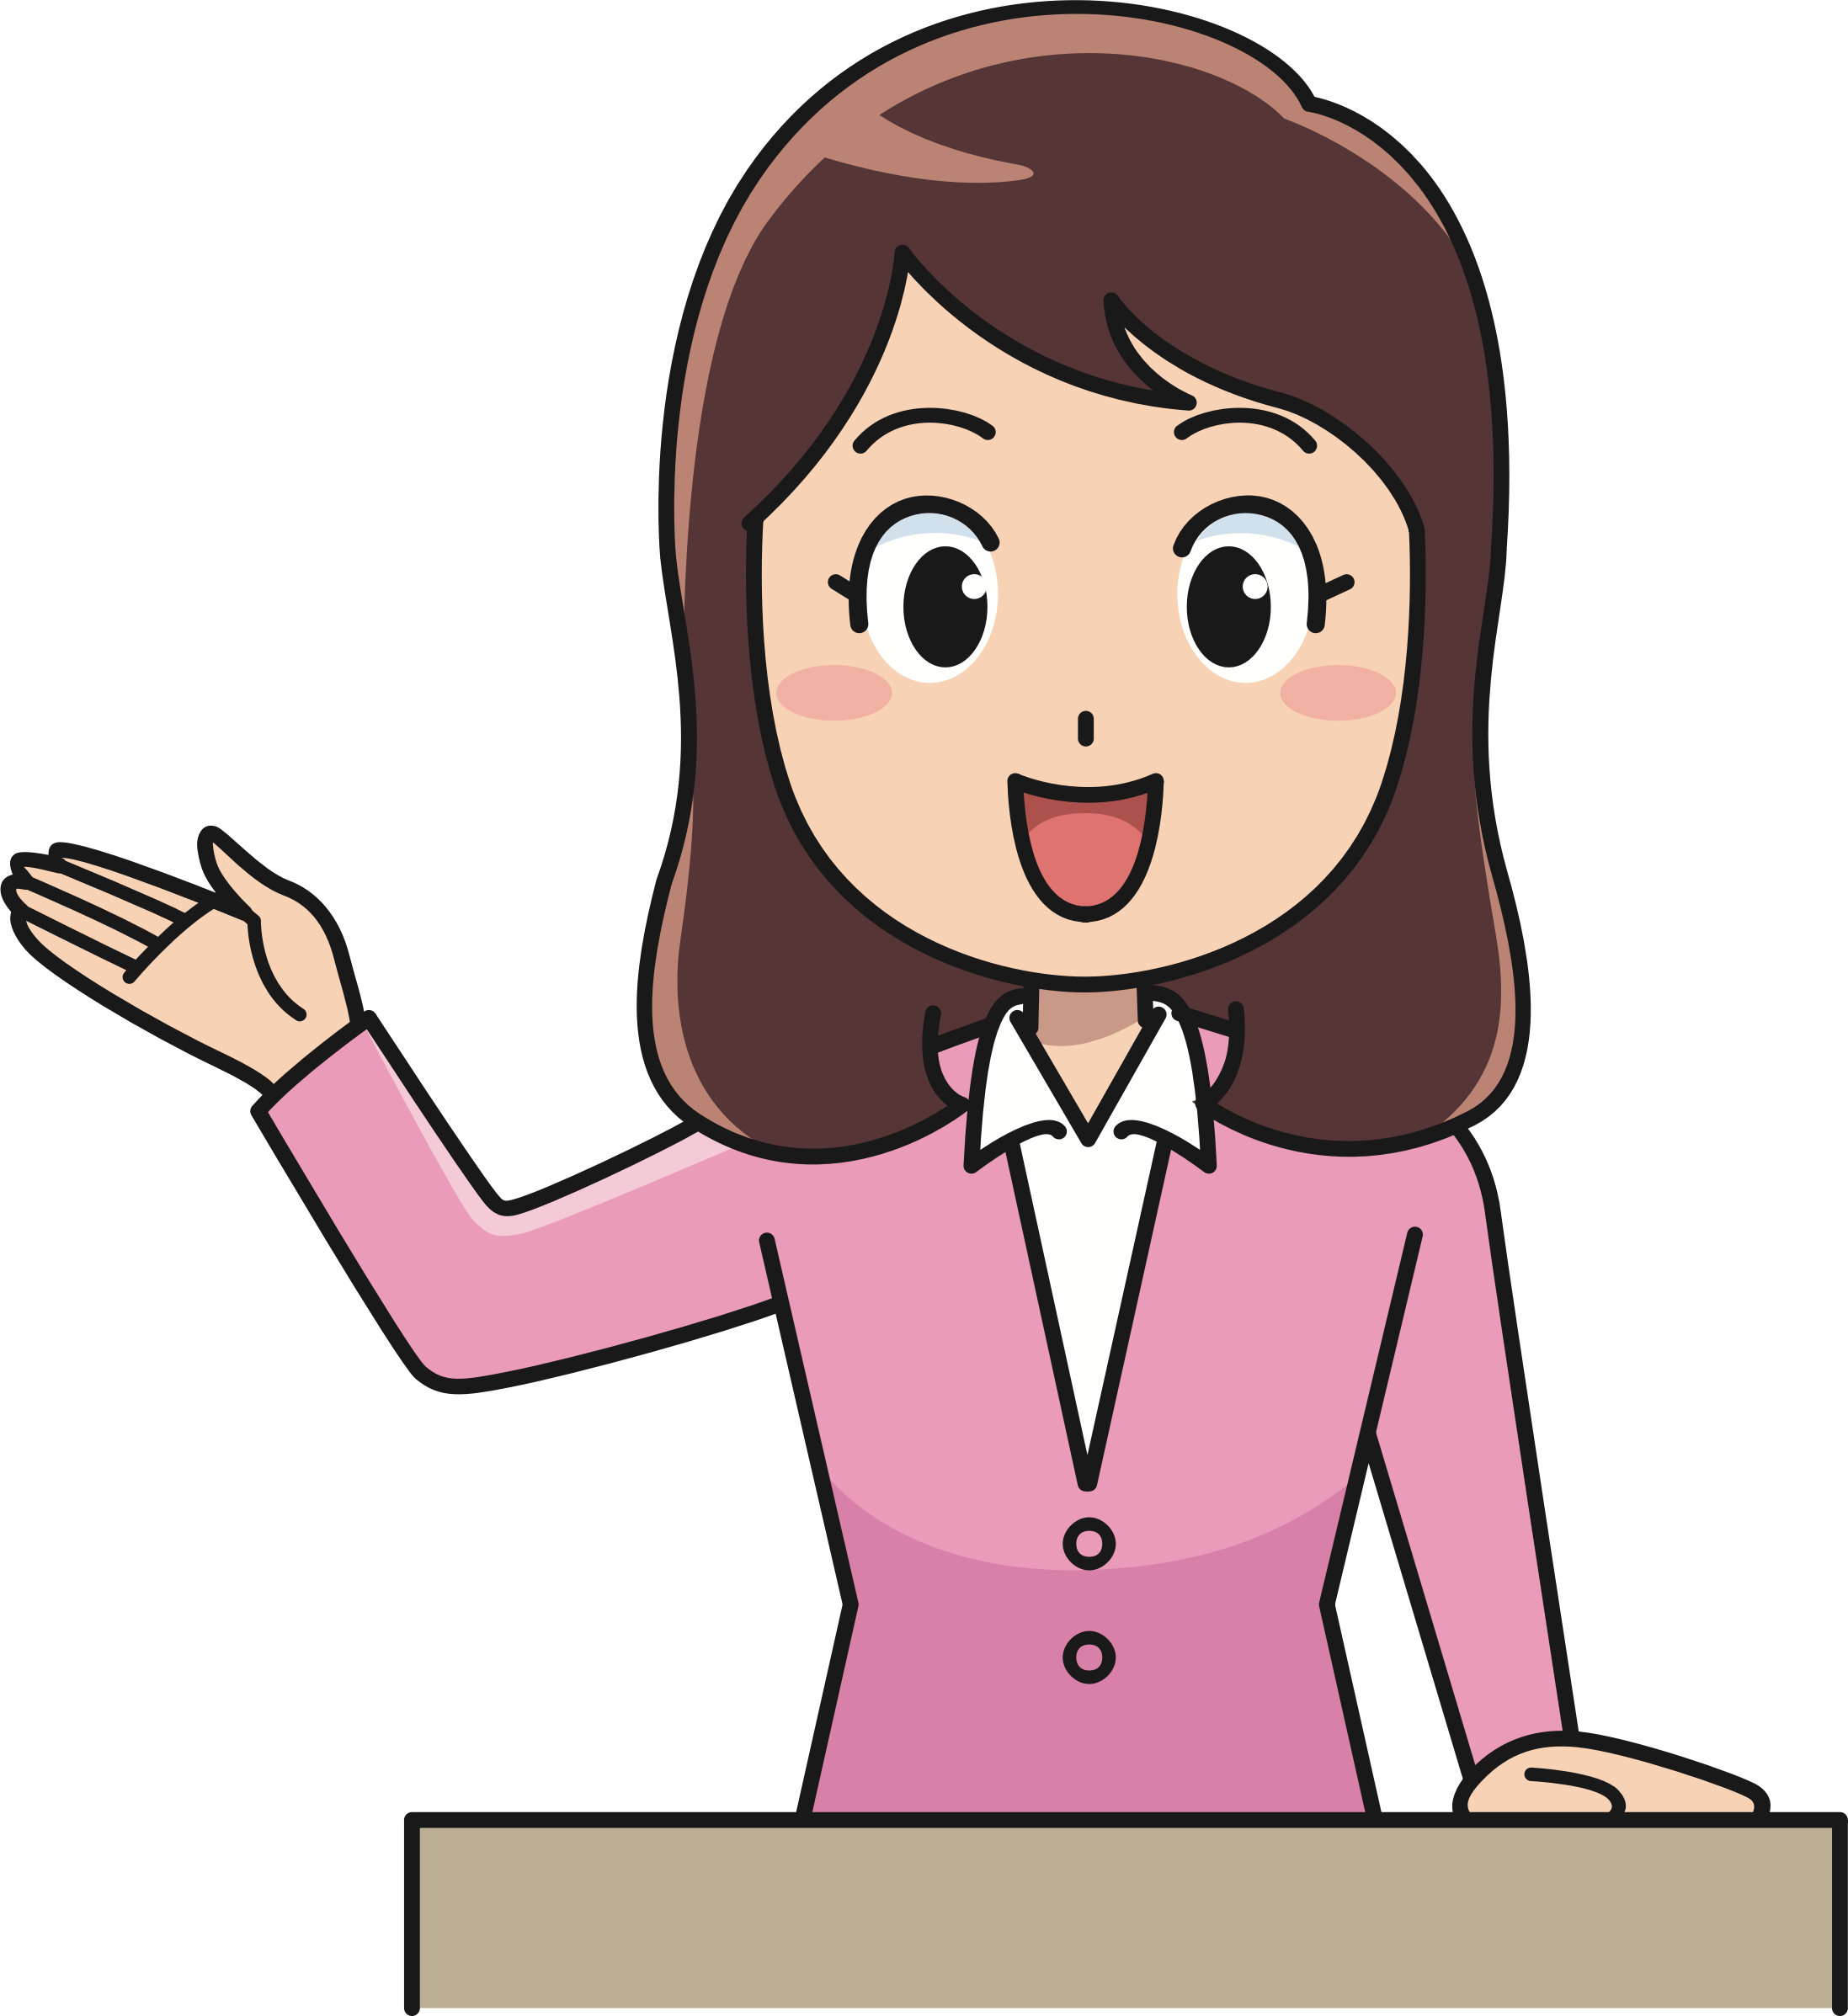 Female instructor big image. Lady clipart professor